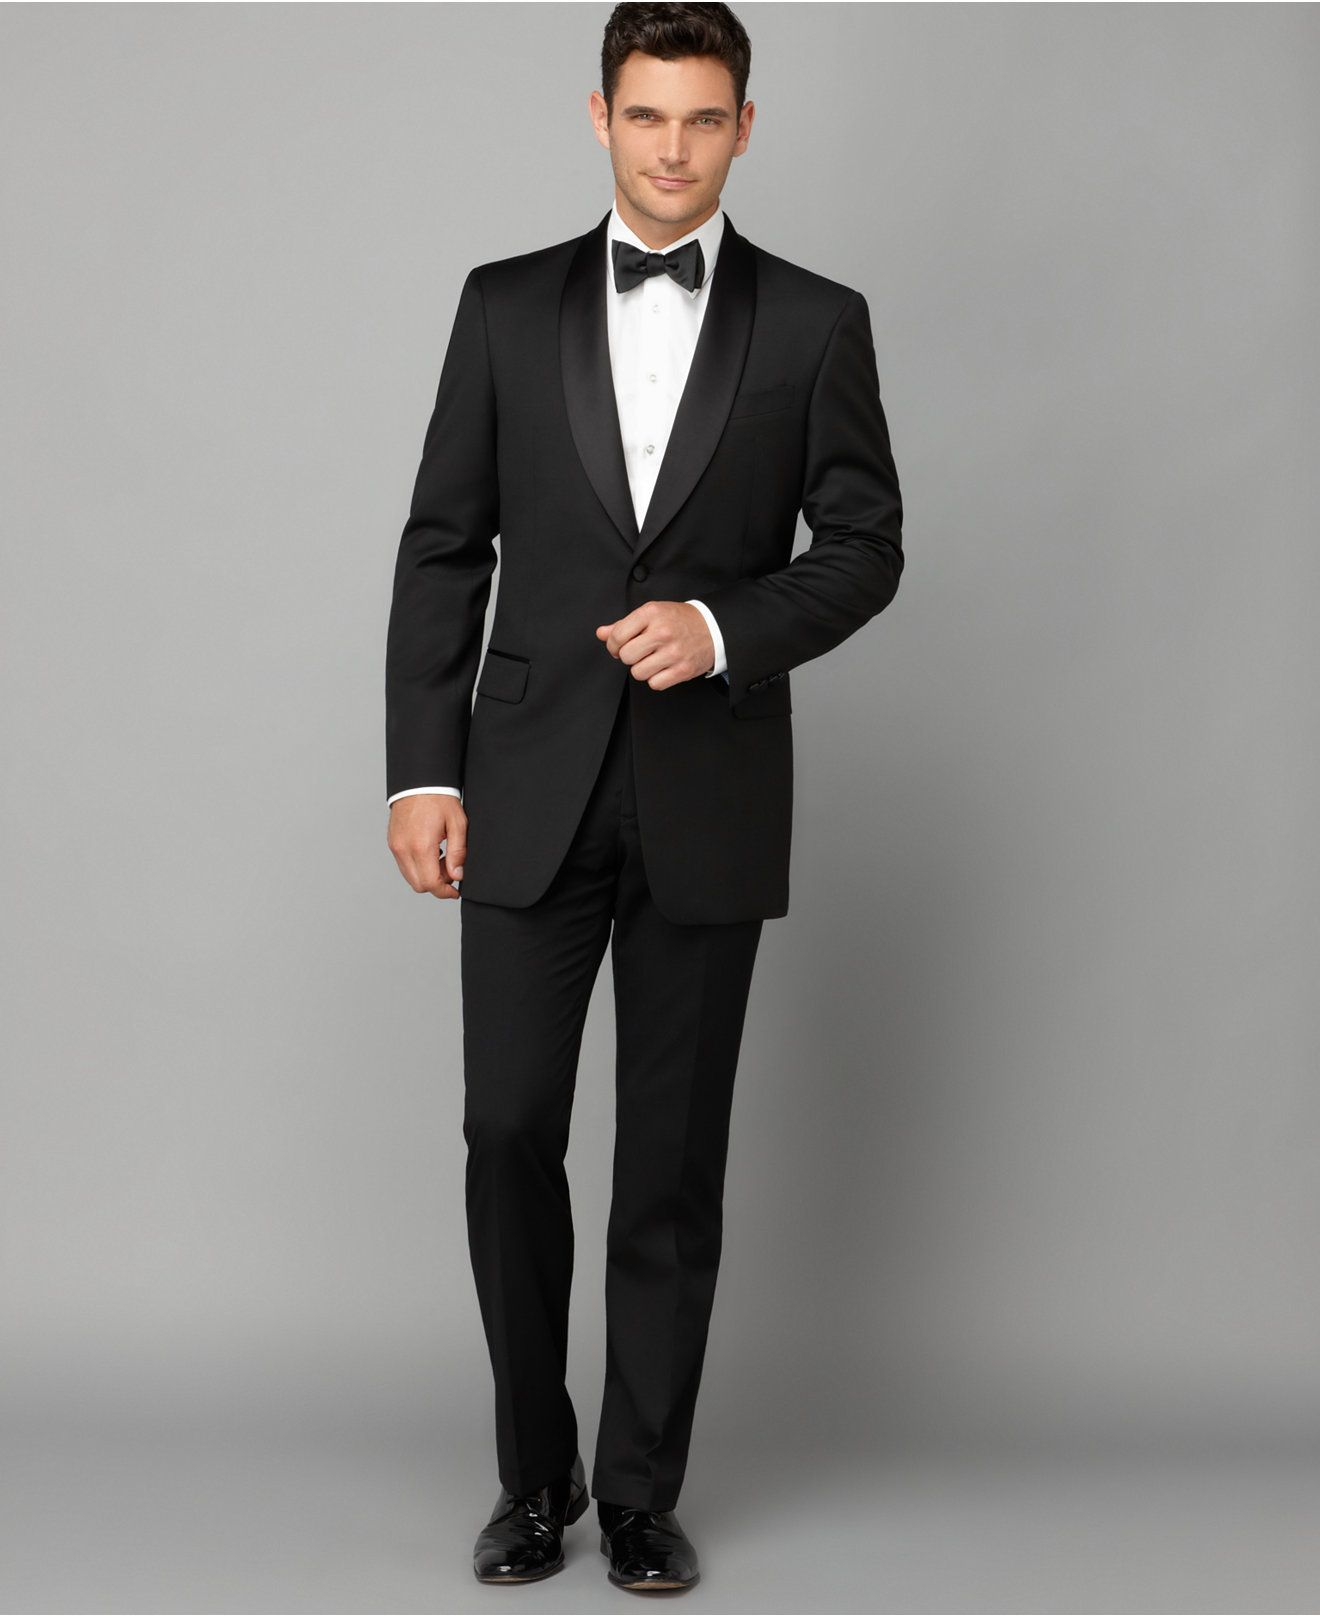 Tommy Hilfiger Tuxedo Shawl Collar Classic-Fit Suit Separates - Shop All  Suit Separates - Macy's